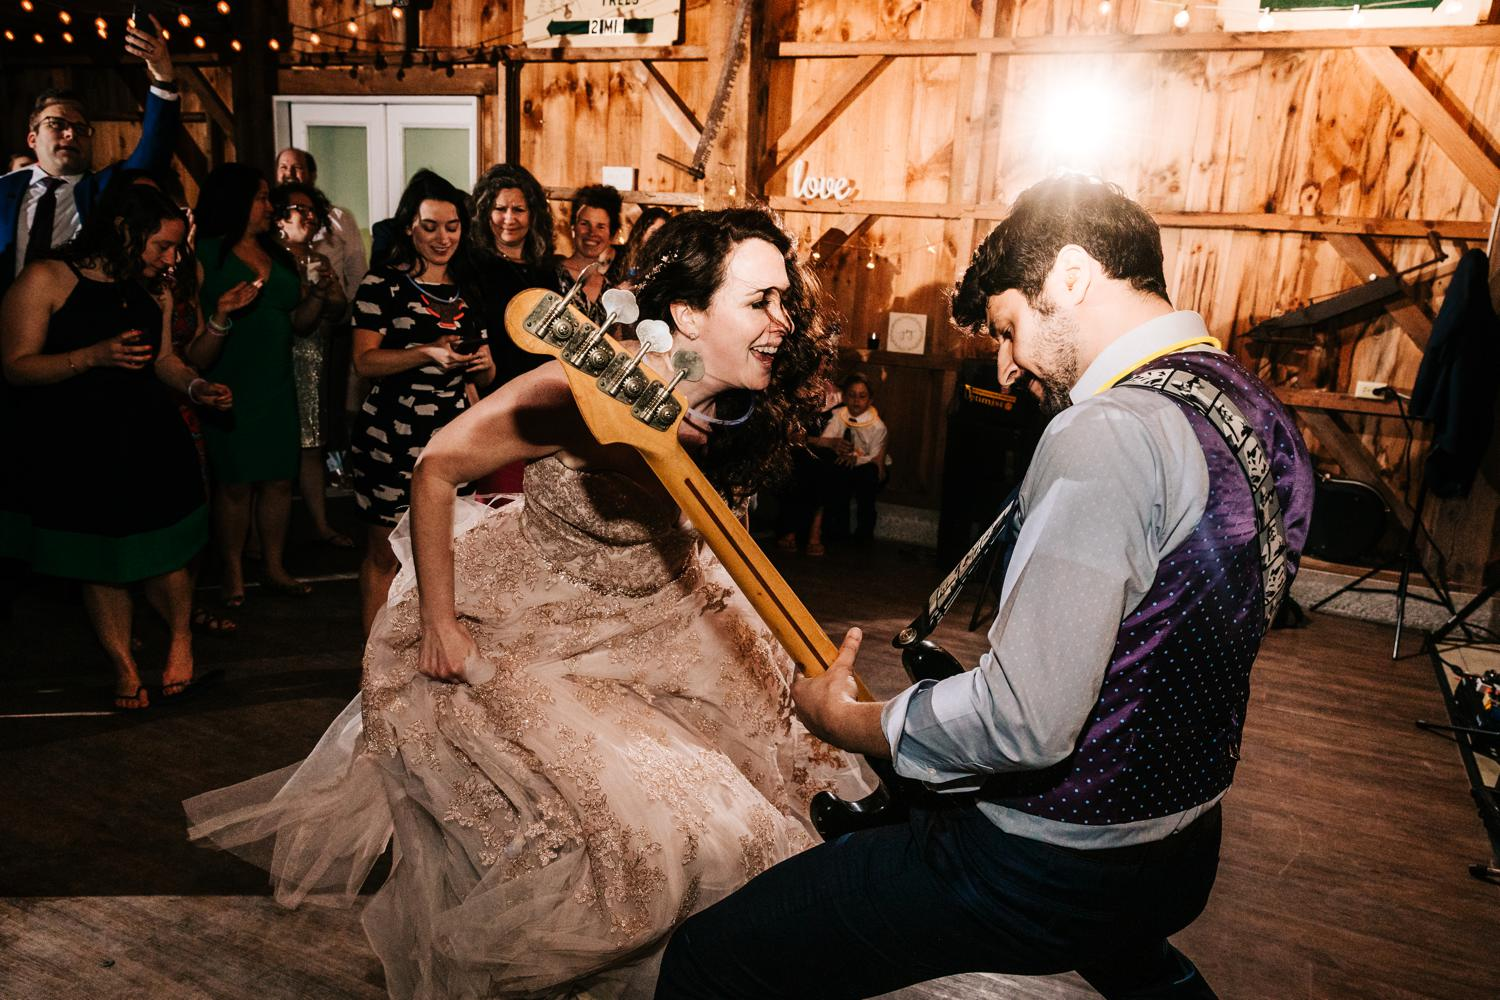 Bride and groom dancing and playing bass guitar in barn wedding in New Mexico